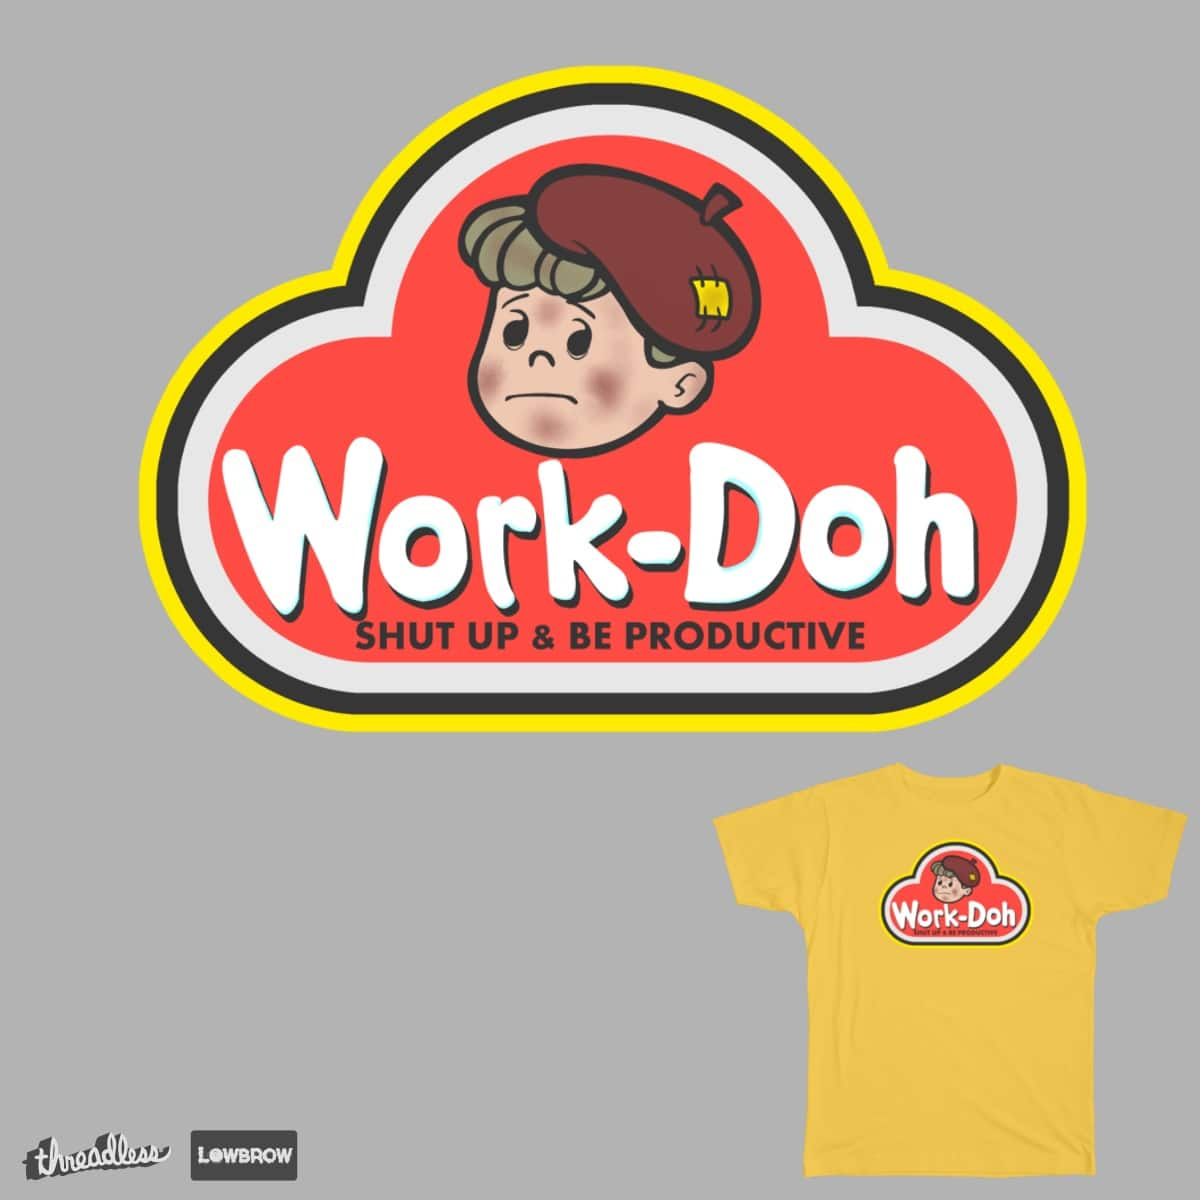 Work-Doh by JadBean on Threadless